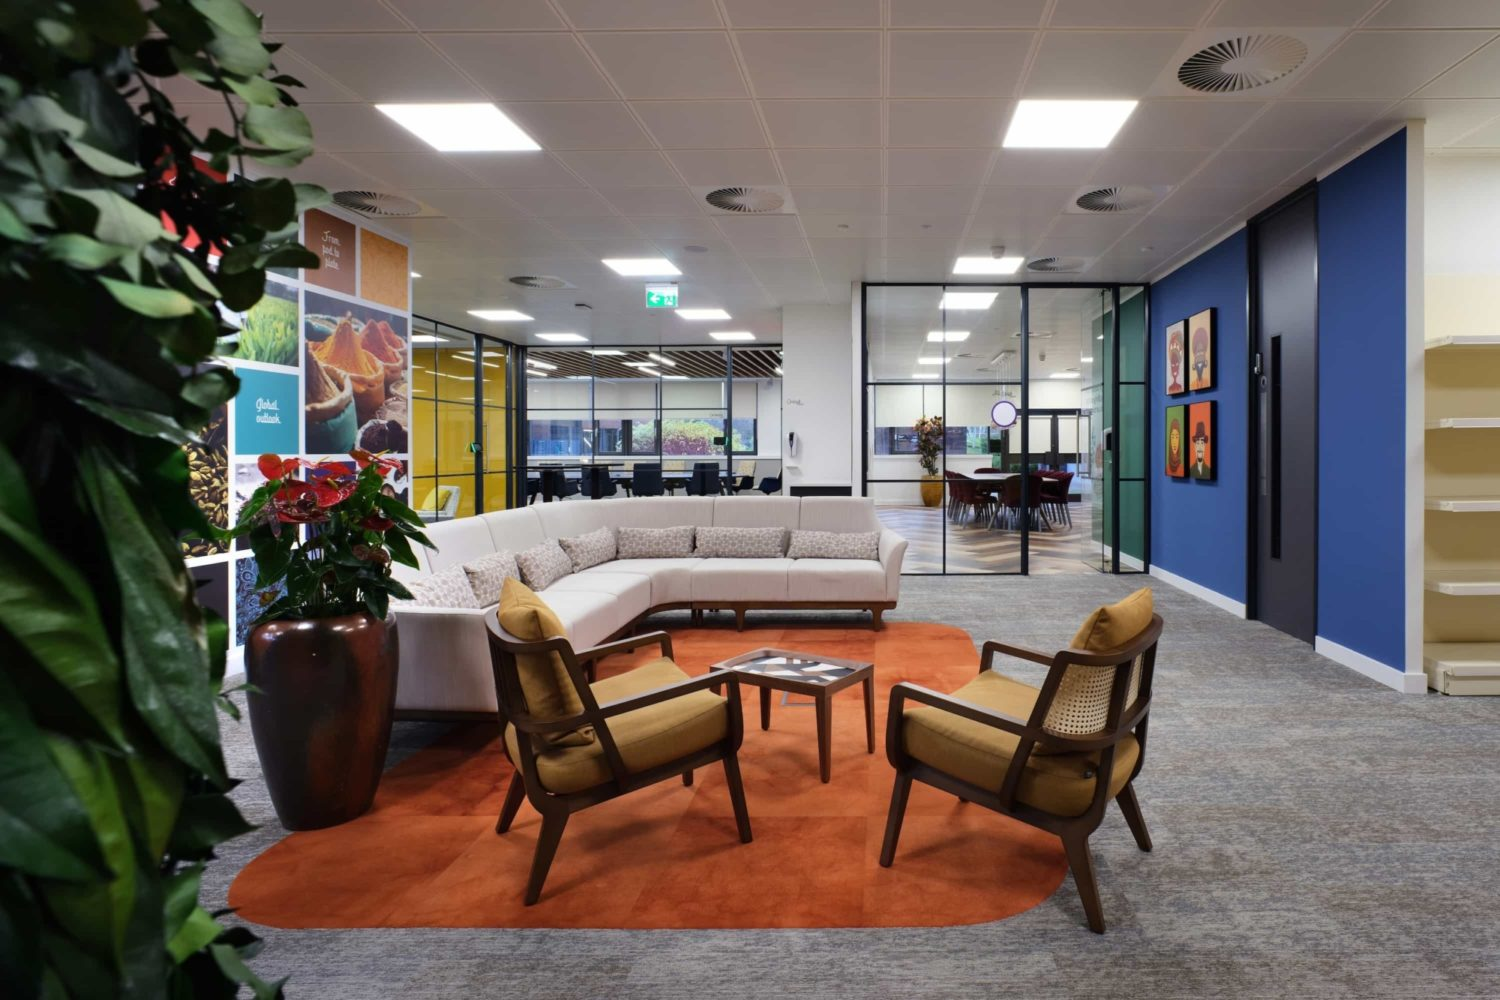 Vibrant foods breakout area fit out